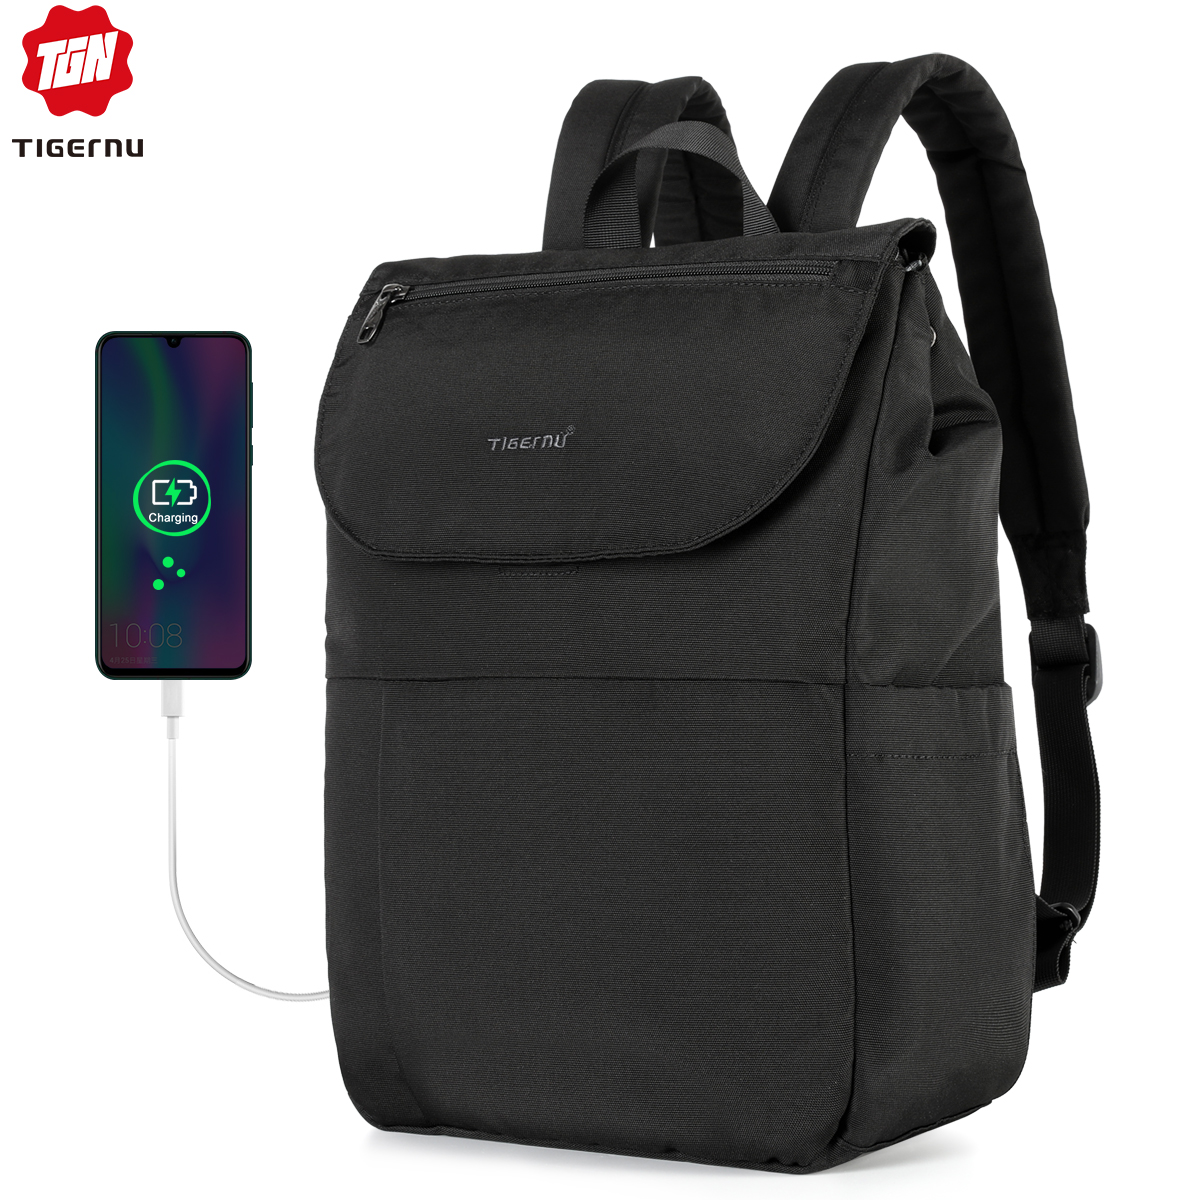 2020 Tigernu Fashion New Arrival Antifouling Waterproof RFID Anti Theft Backpacks Men Women Large Capacity School Backpack Male